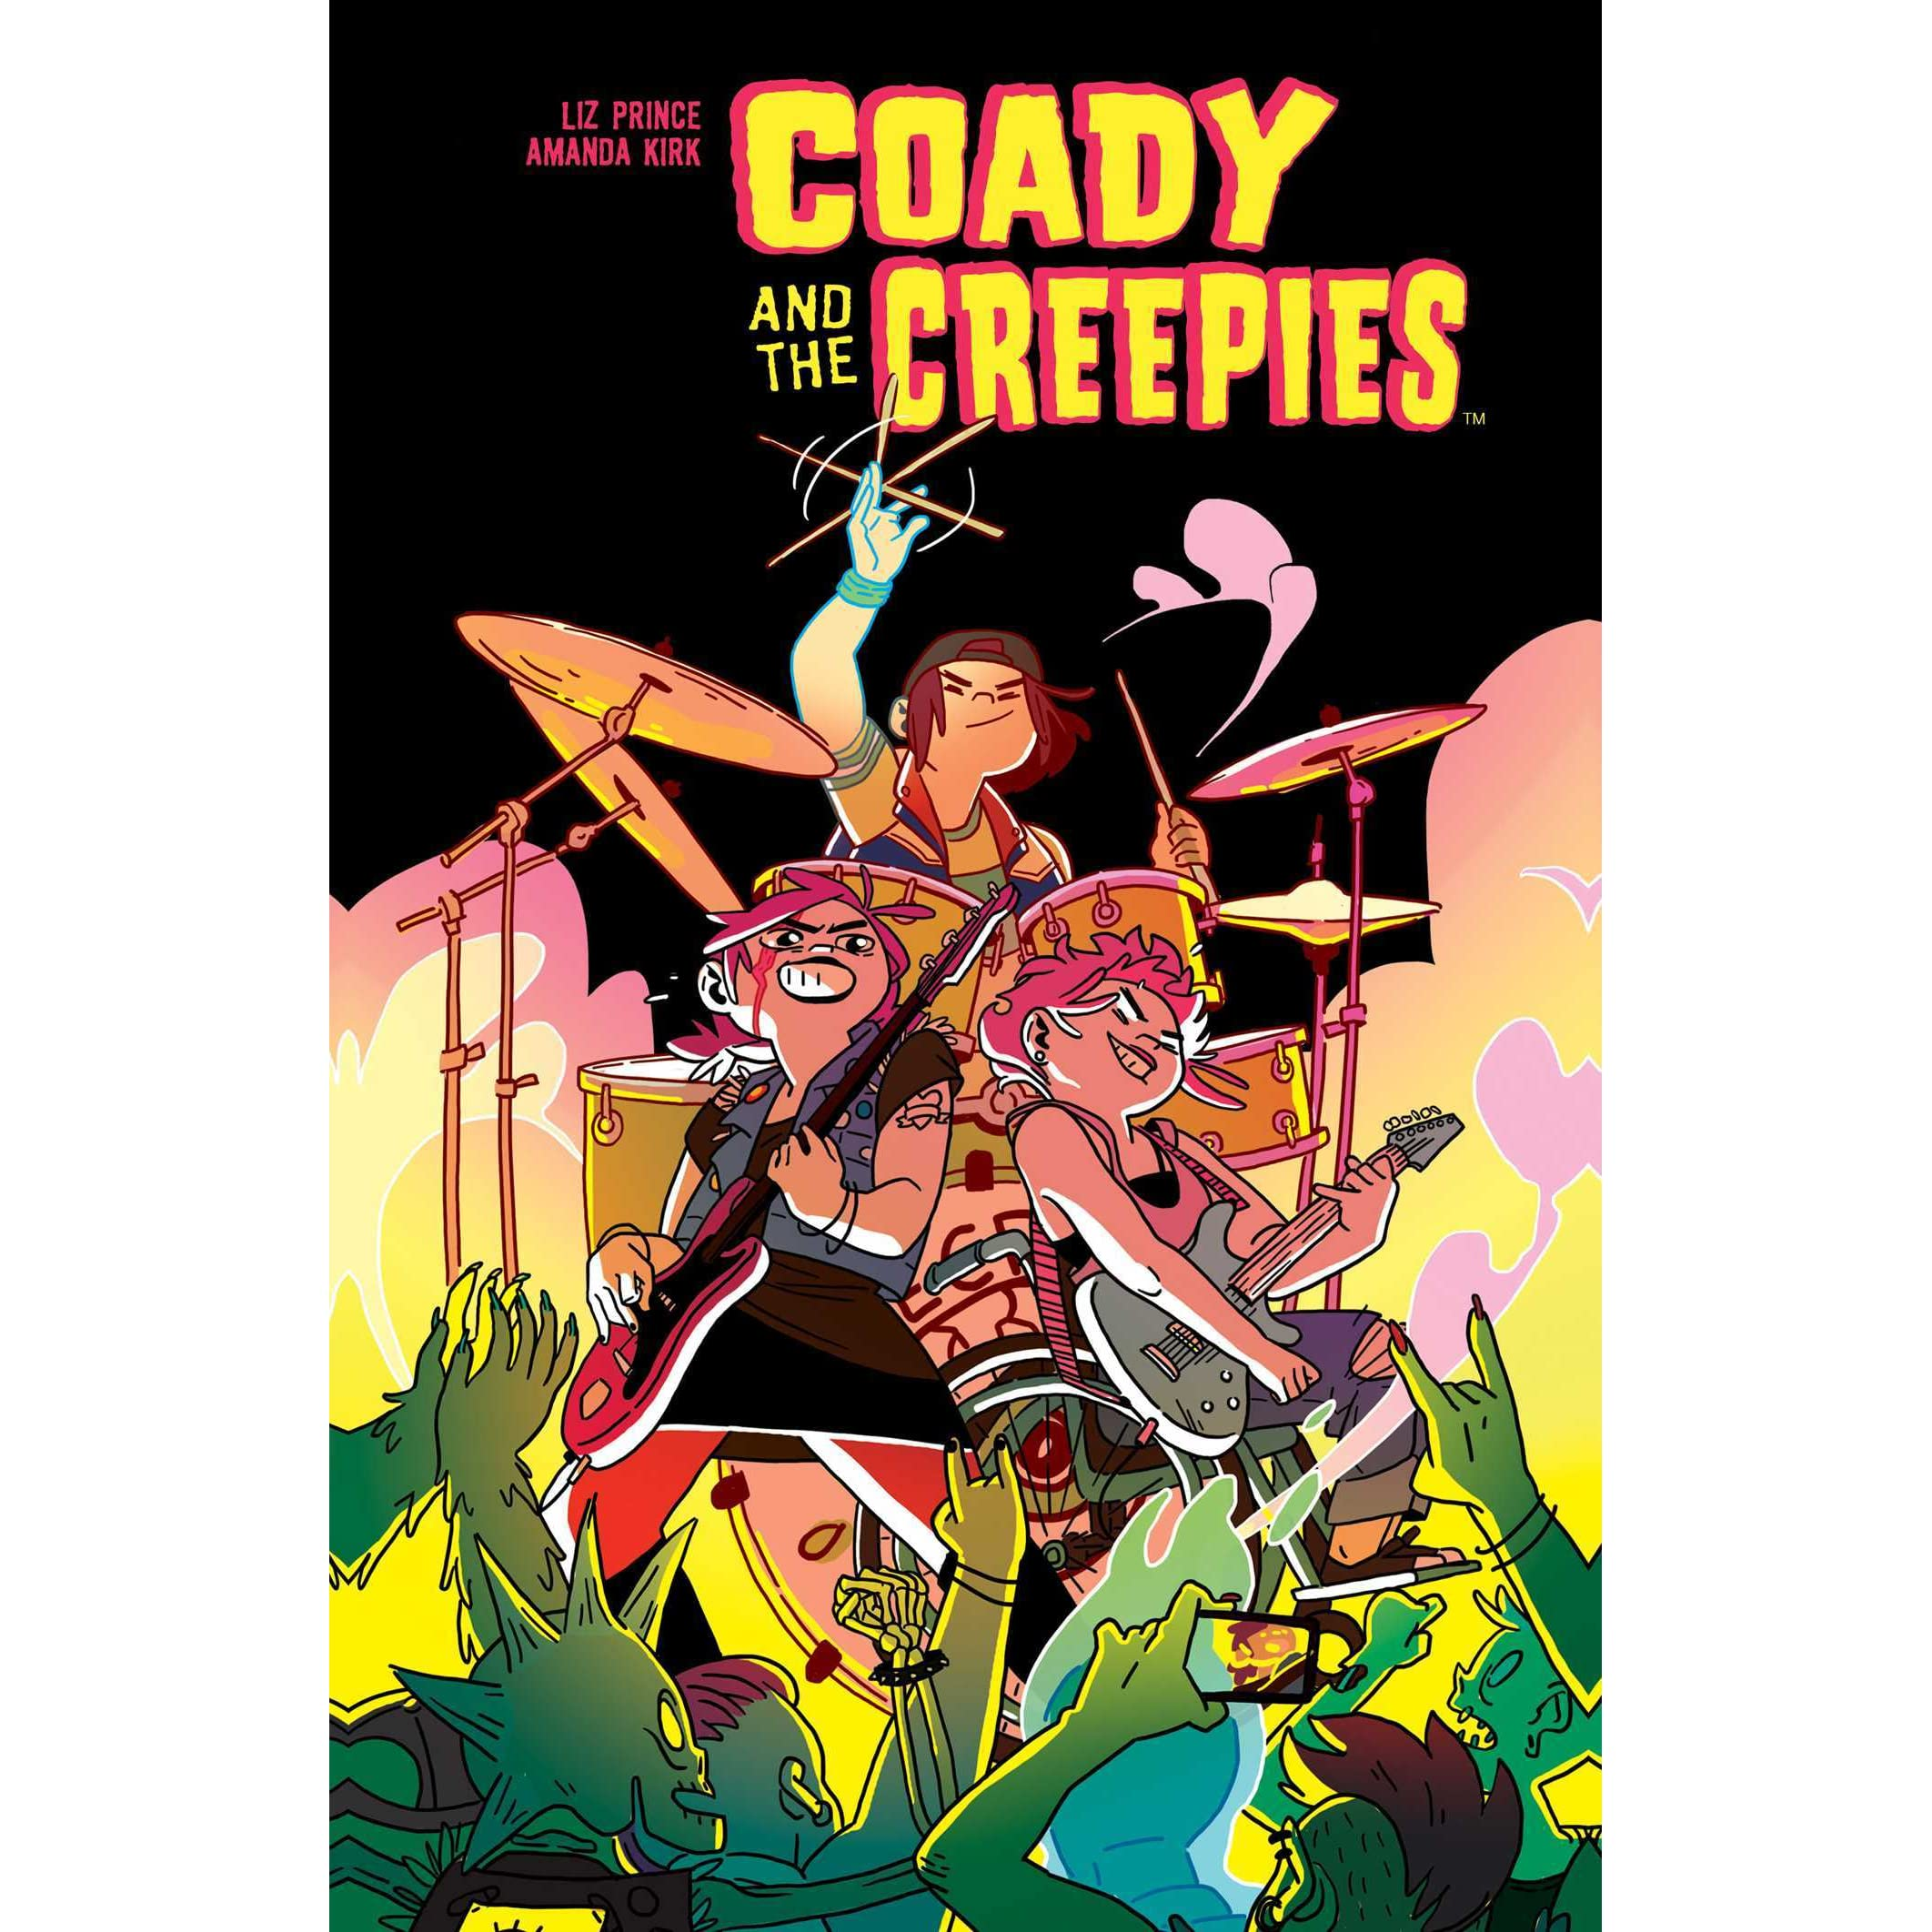 Coady and the Creepies #1 (of 4)